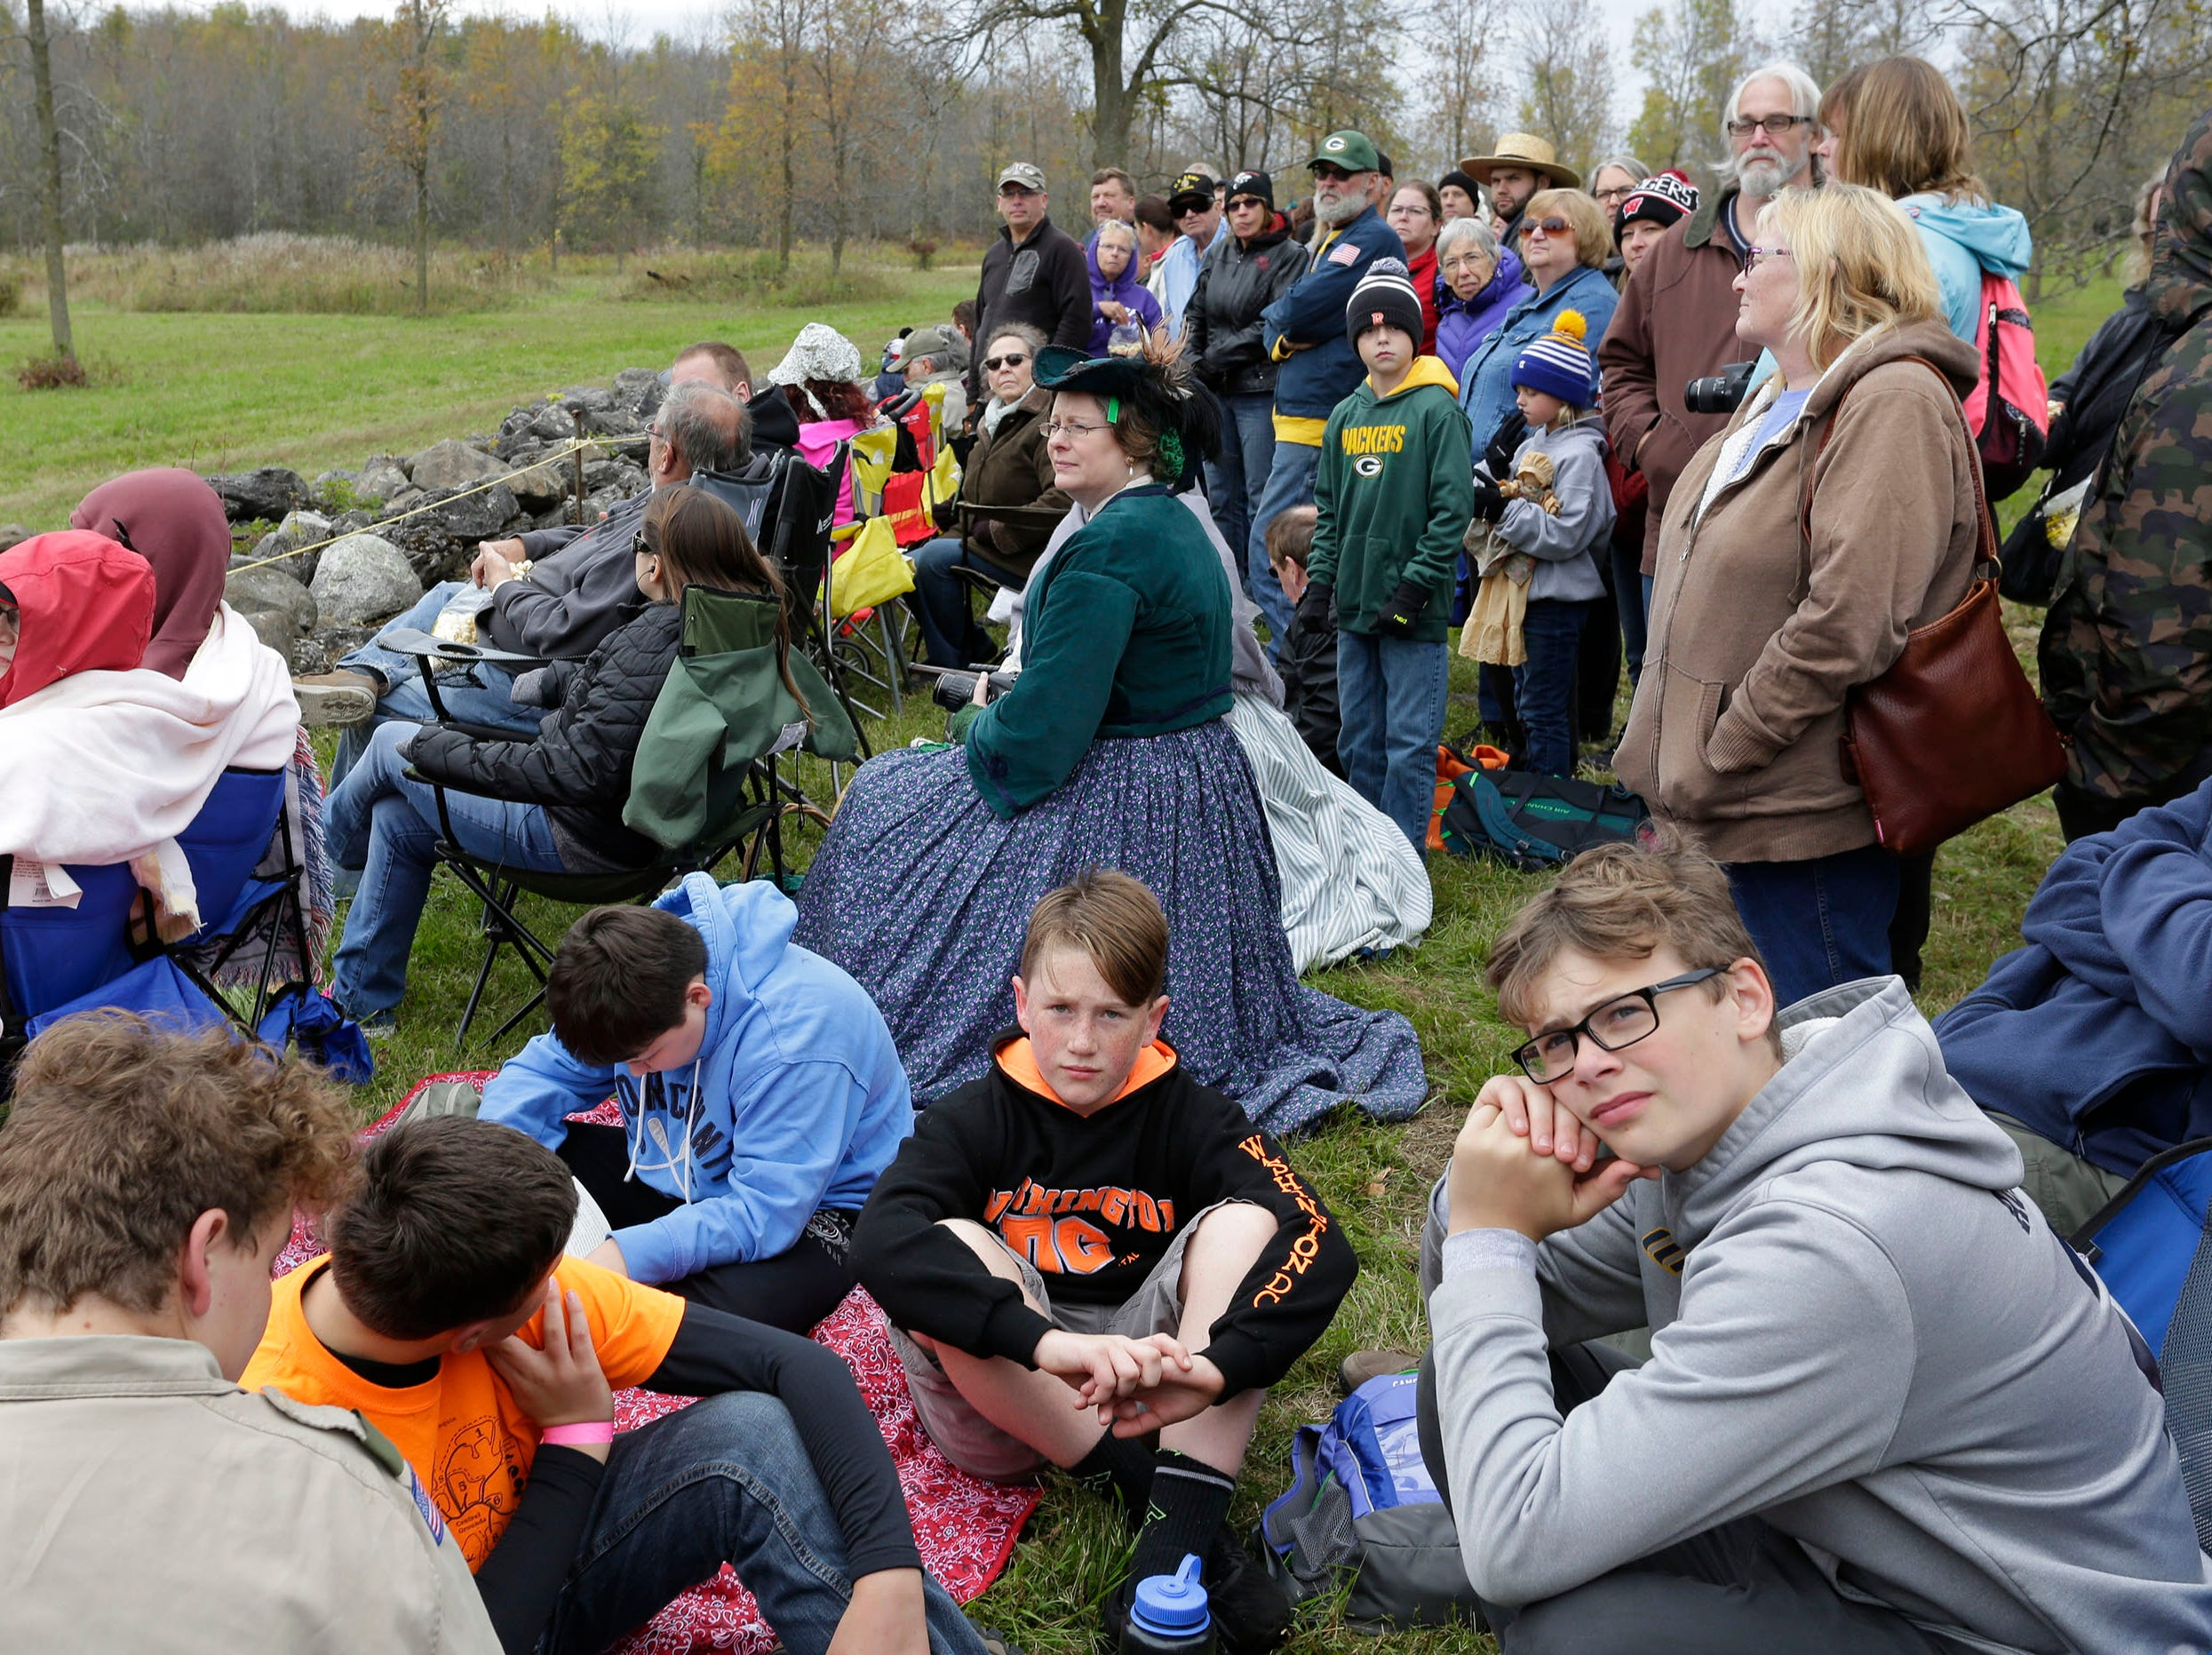 Hundreds of people wait for the Civil War Weekend battle to begin at the Wade House, Saturday September 29, 2018, in Greenbush, Wis.